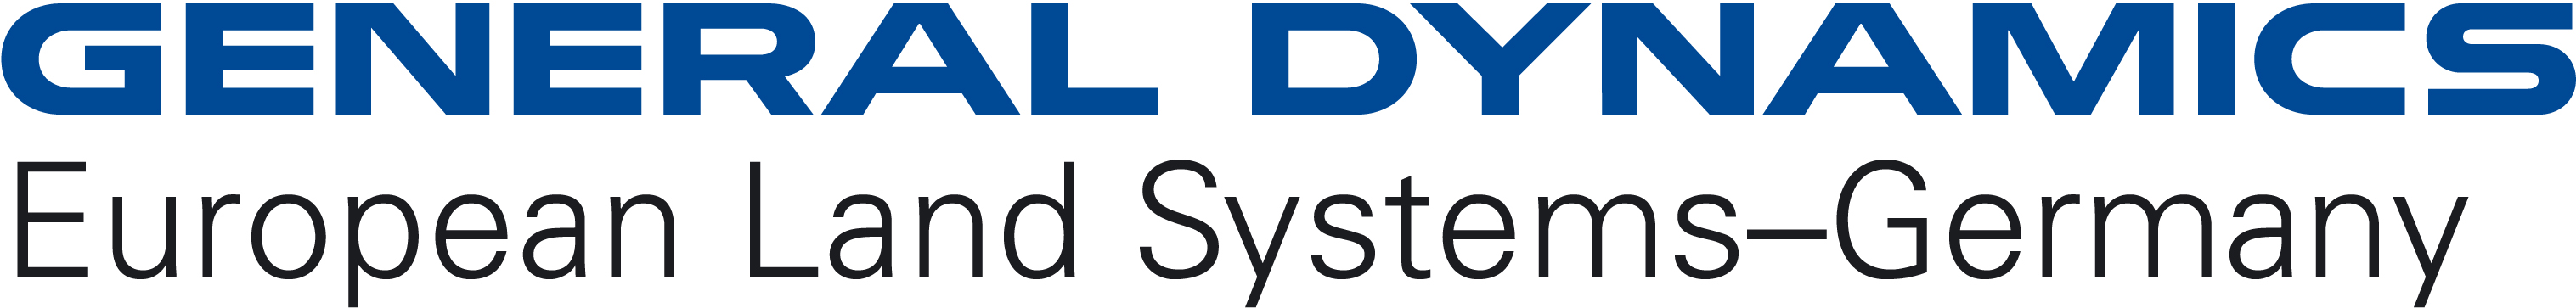 General Dynamics European Land Systems - Germany